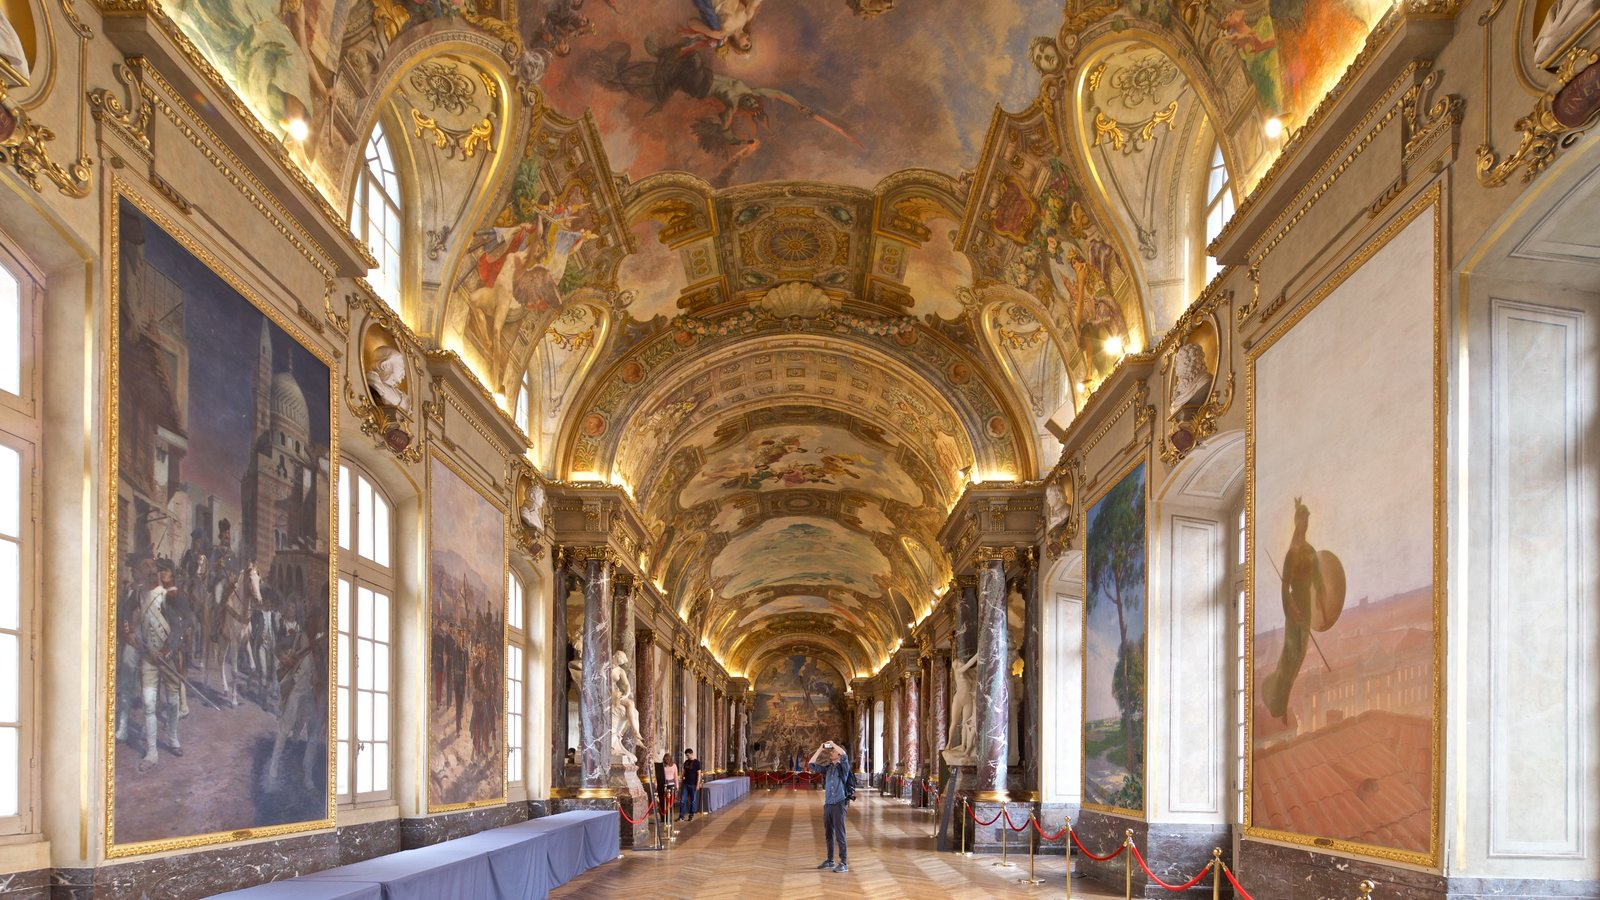 Capitole de Toulouse showing art, heritage elements and interior views